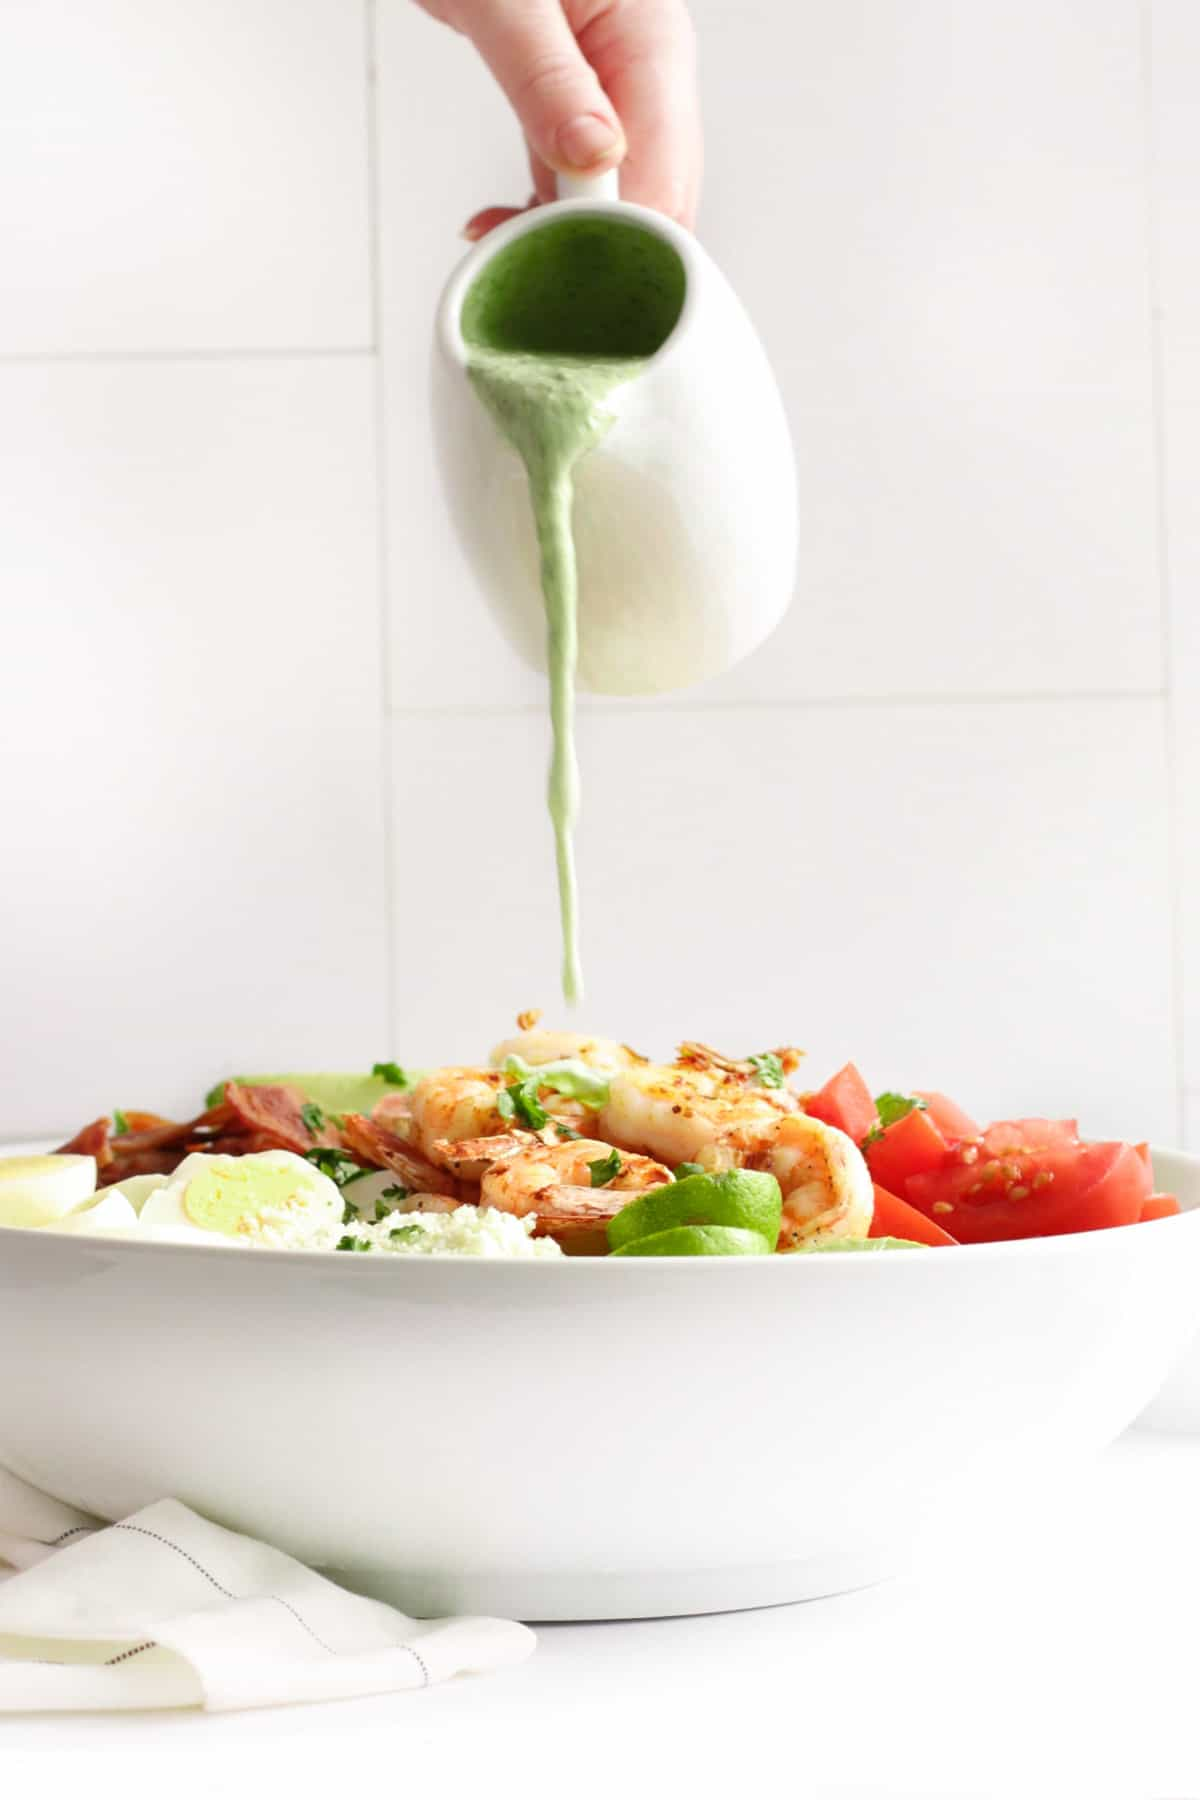 pouring jalapeno ranch dressing over a salad topped with shrimp, tomatoes, eggs, and bacon